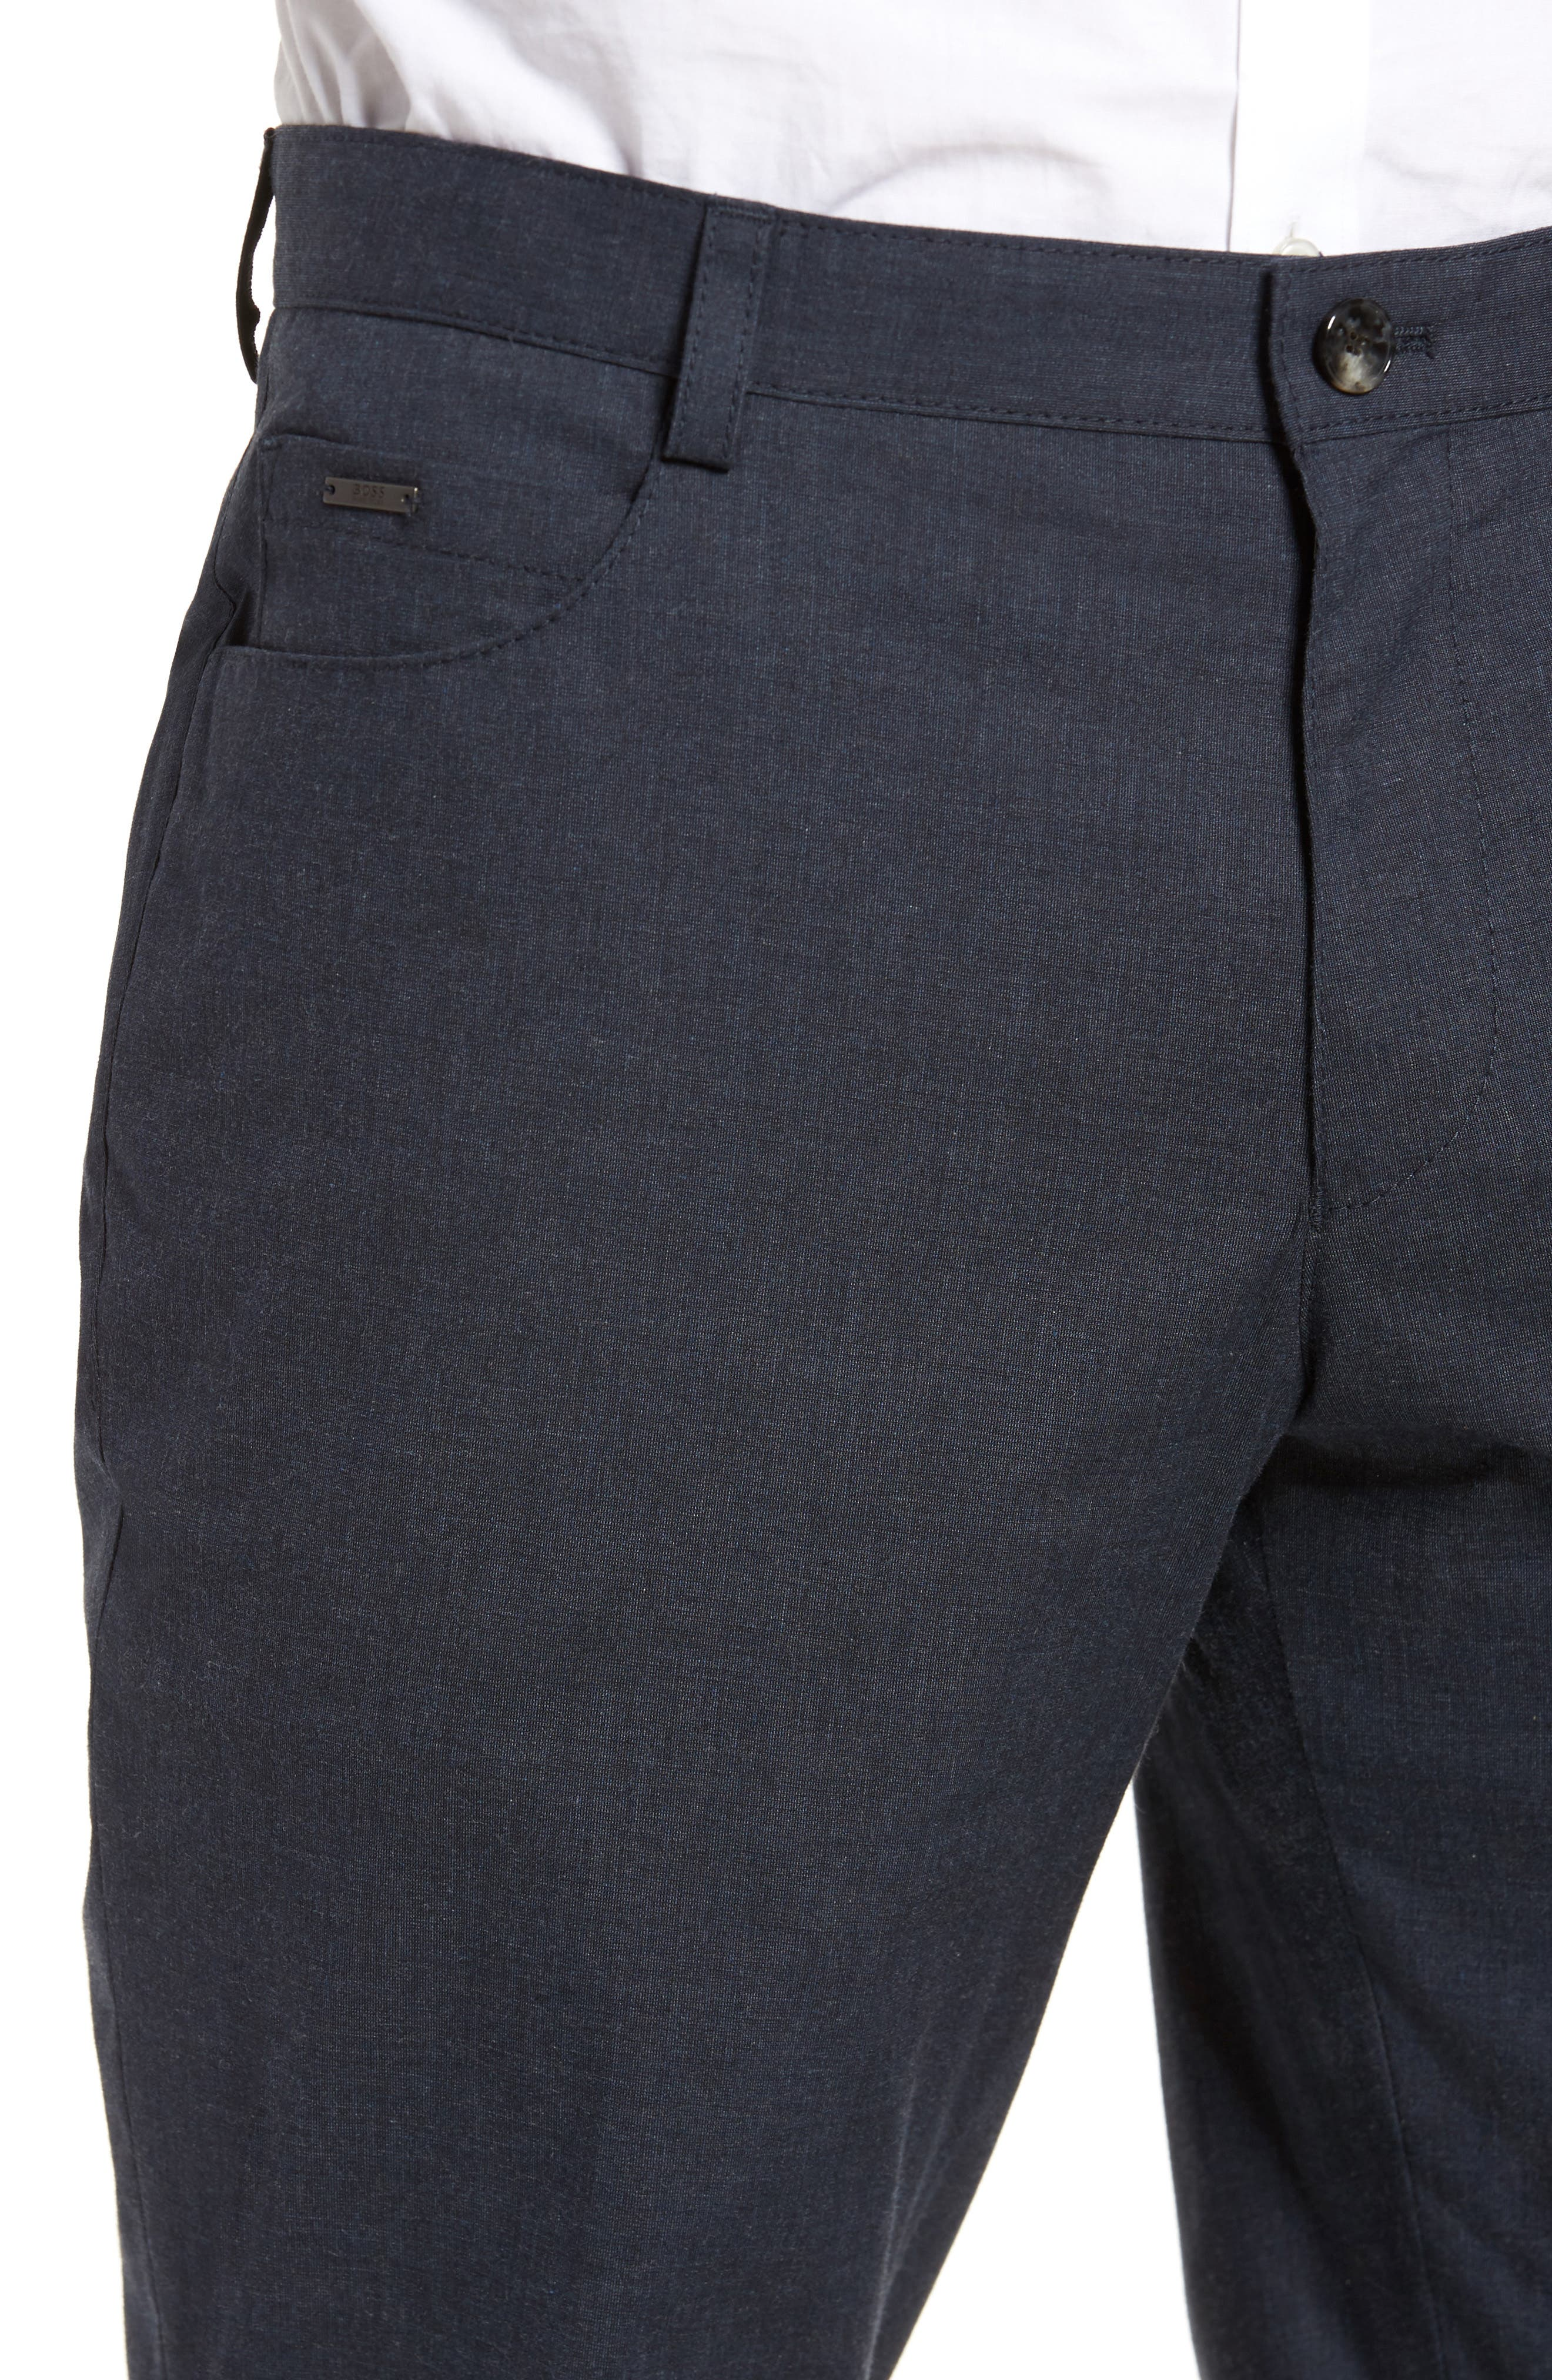 Gaetano Flat Front Stretch Solid Cotton Trousers,                             Alternate thumbnail 4, color,                             Dark Grey